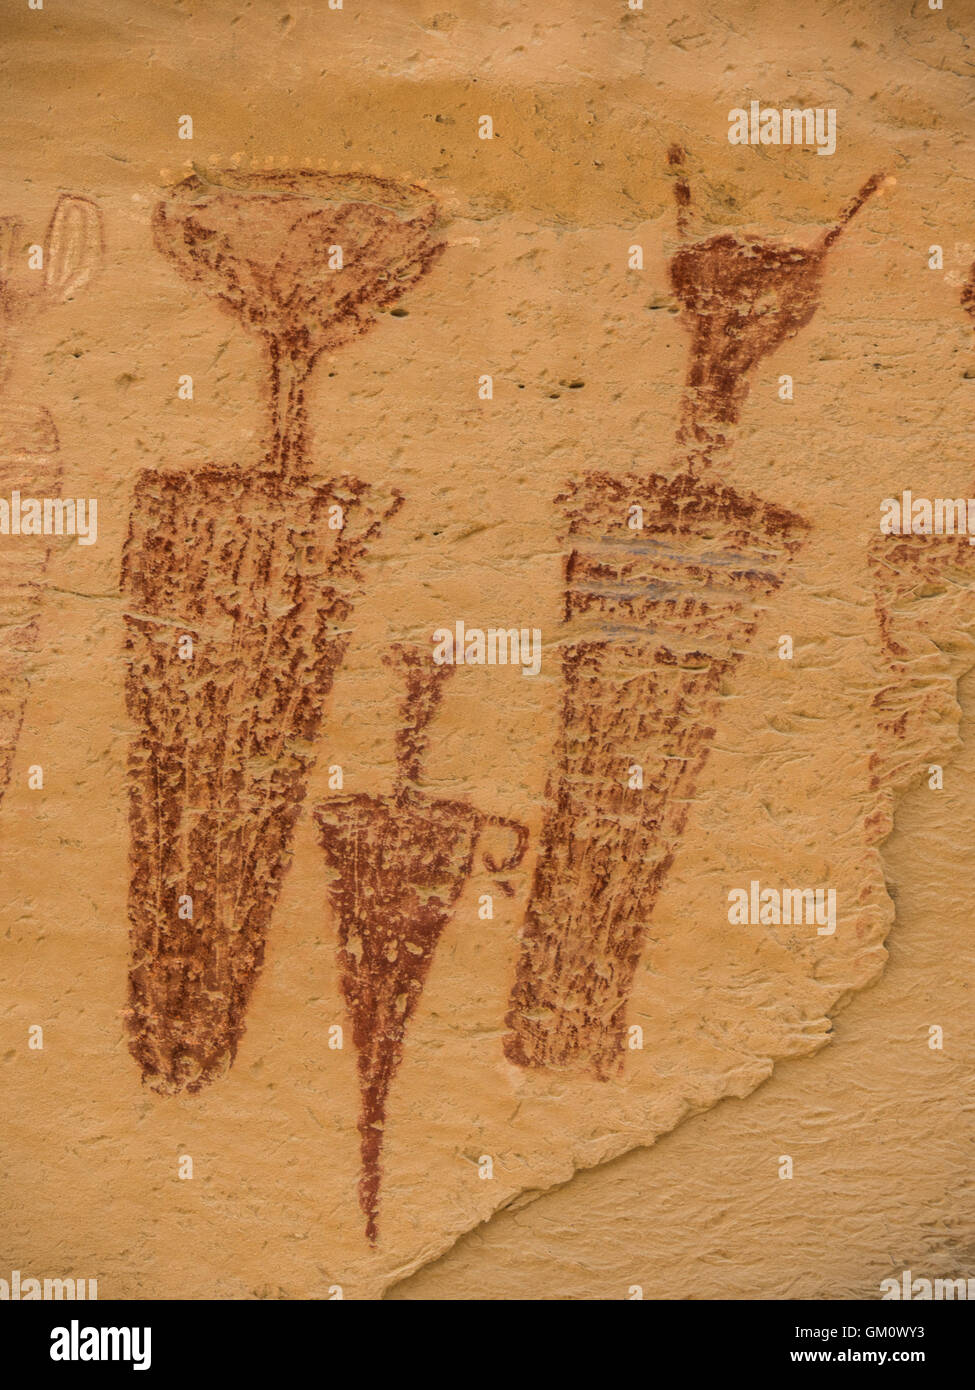 Carrot Men pictograph site, County Road 23 South of Rangely, Colorado. - Stock Image